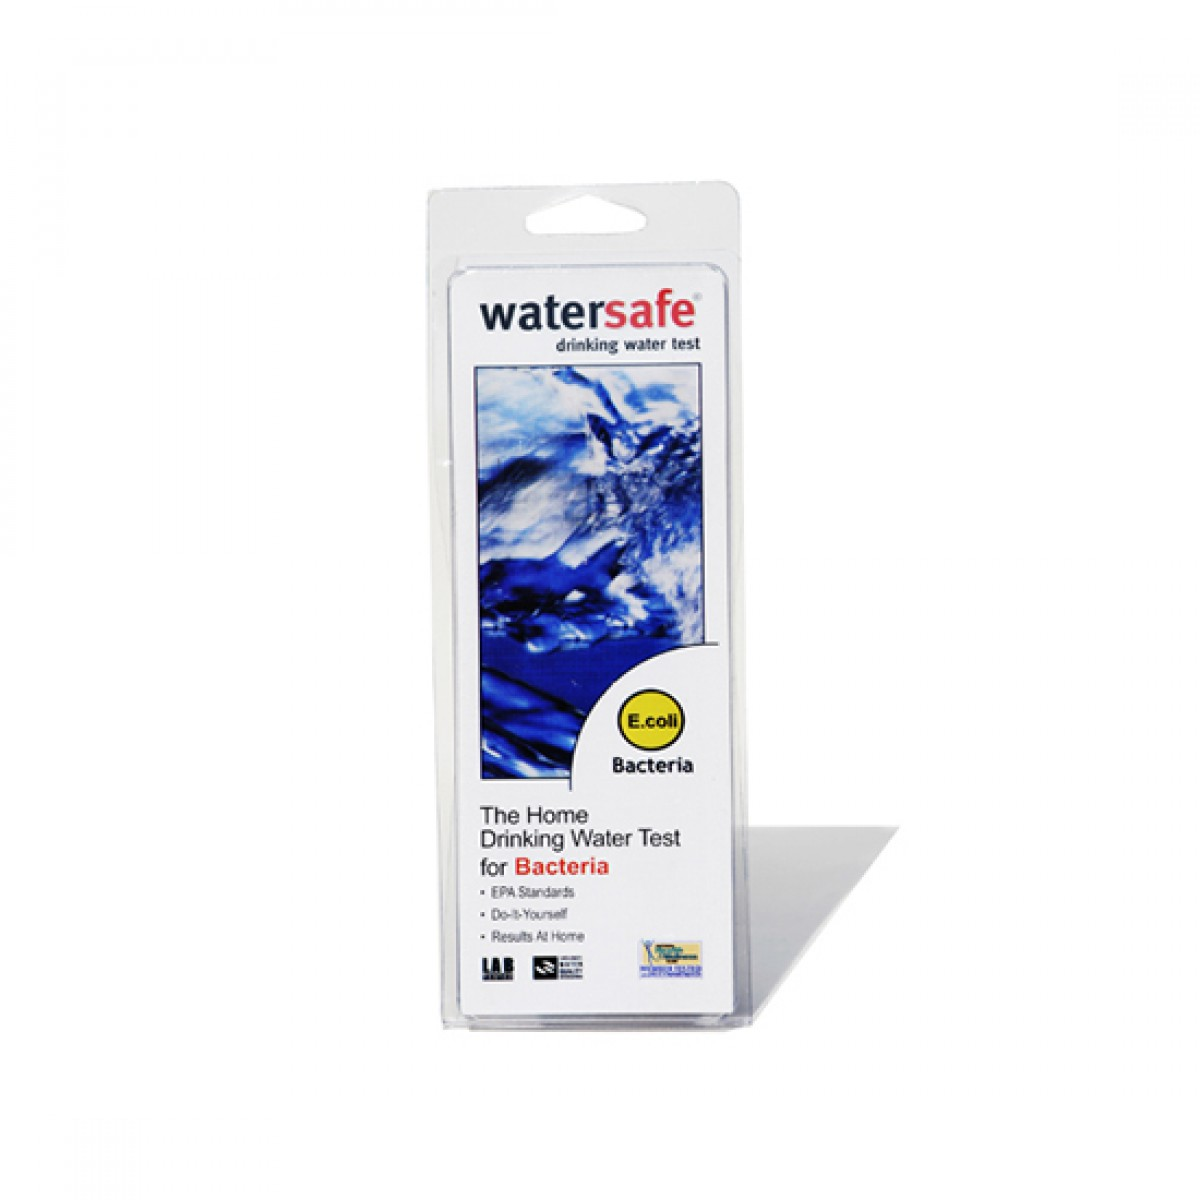 Home Drinking Water Bacteria Watersafe Water Test Kit